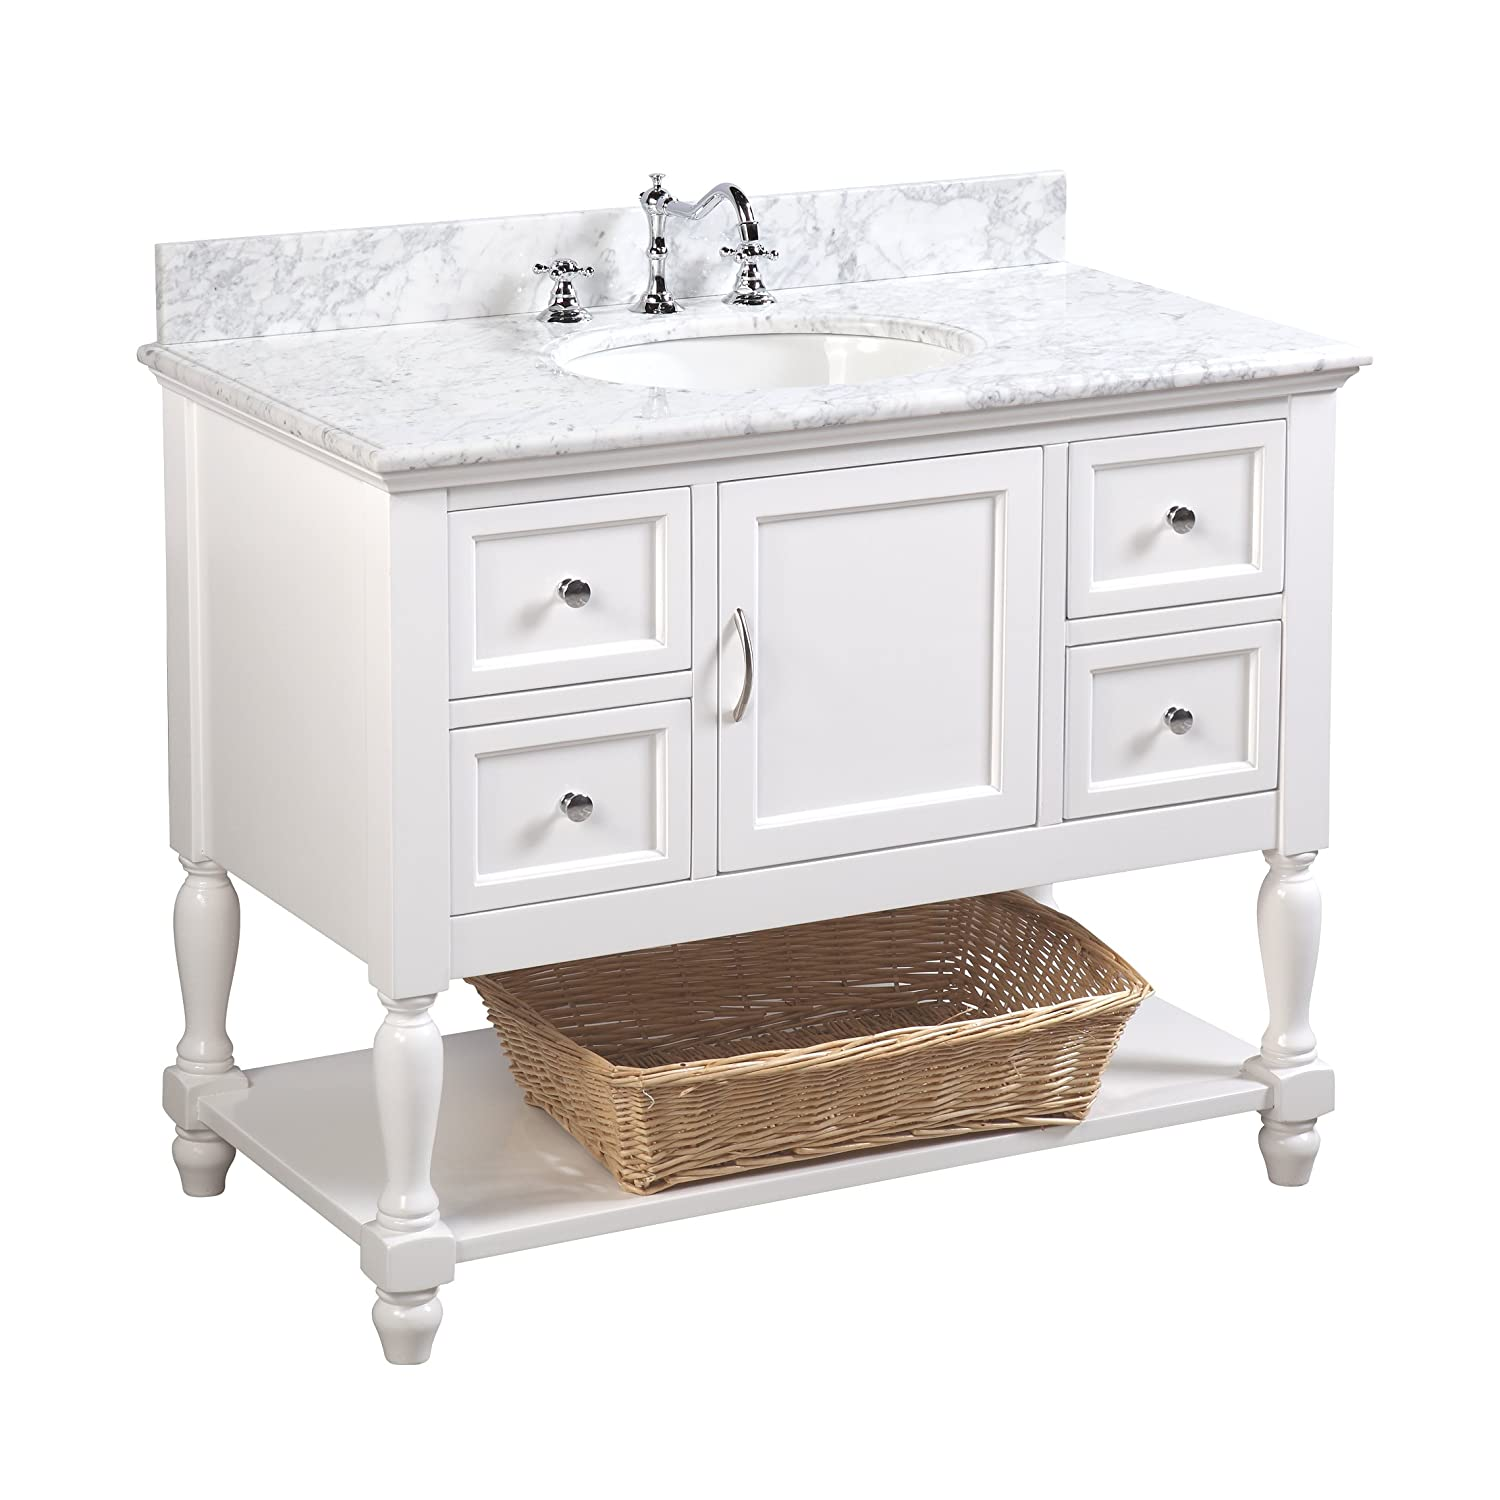 Beverly 42 inch Bathroom Vanity Carrara White Includes